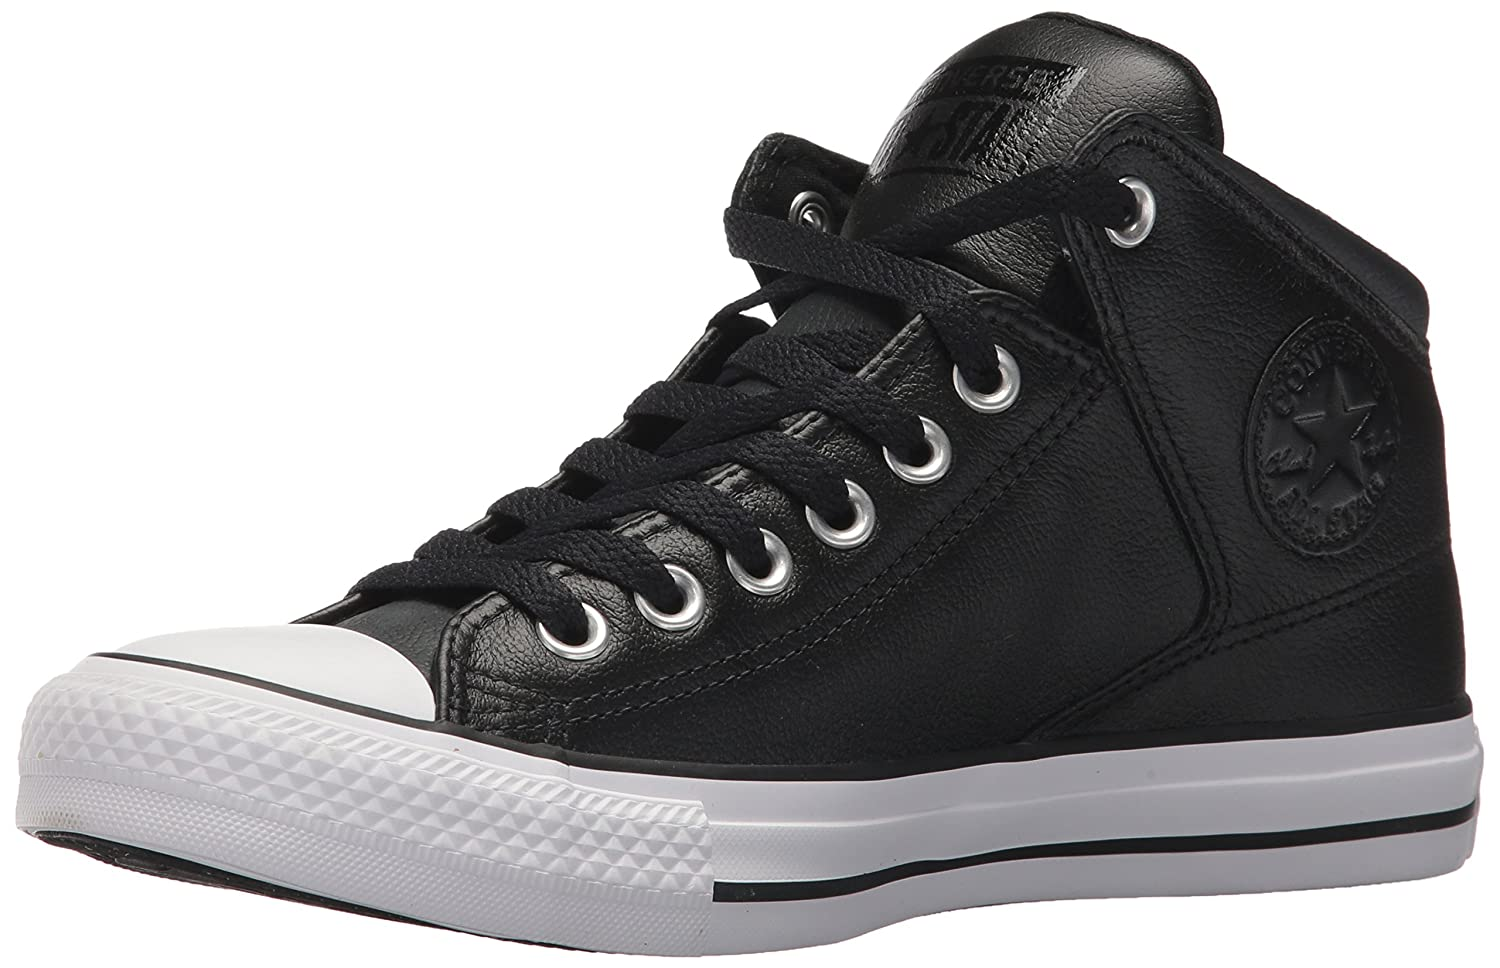 Converse Men's Street Leather High Top Sneaker B00UI9C9CU 11 D(M) US|Black/Black/White